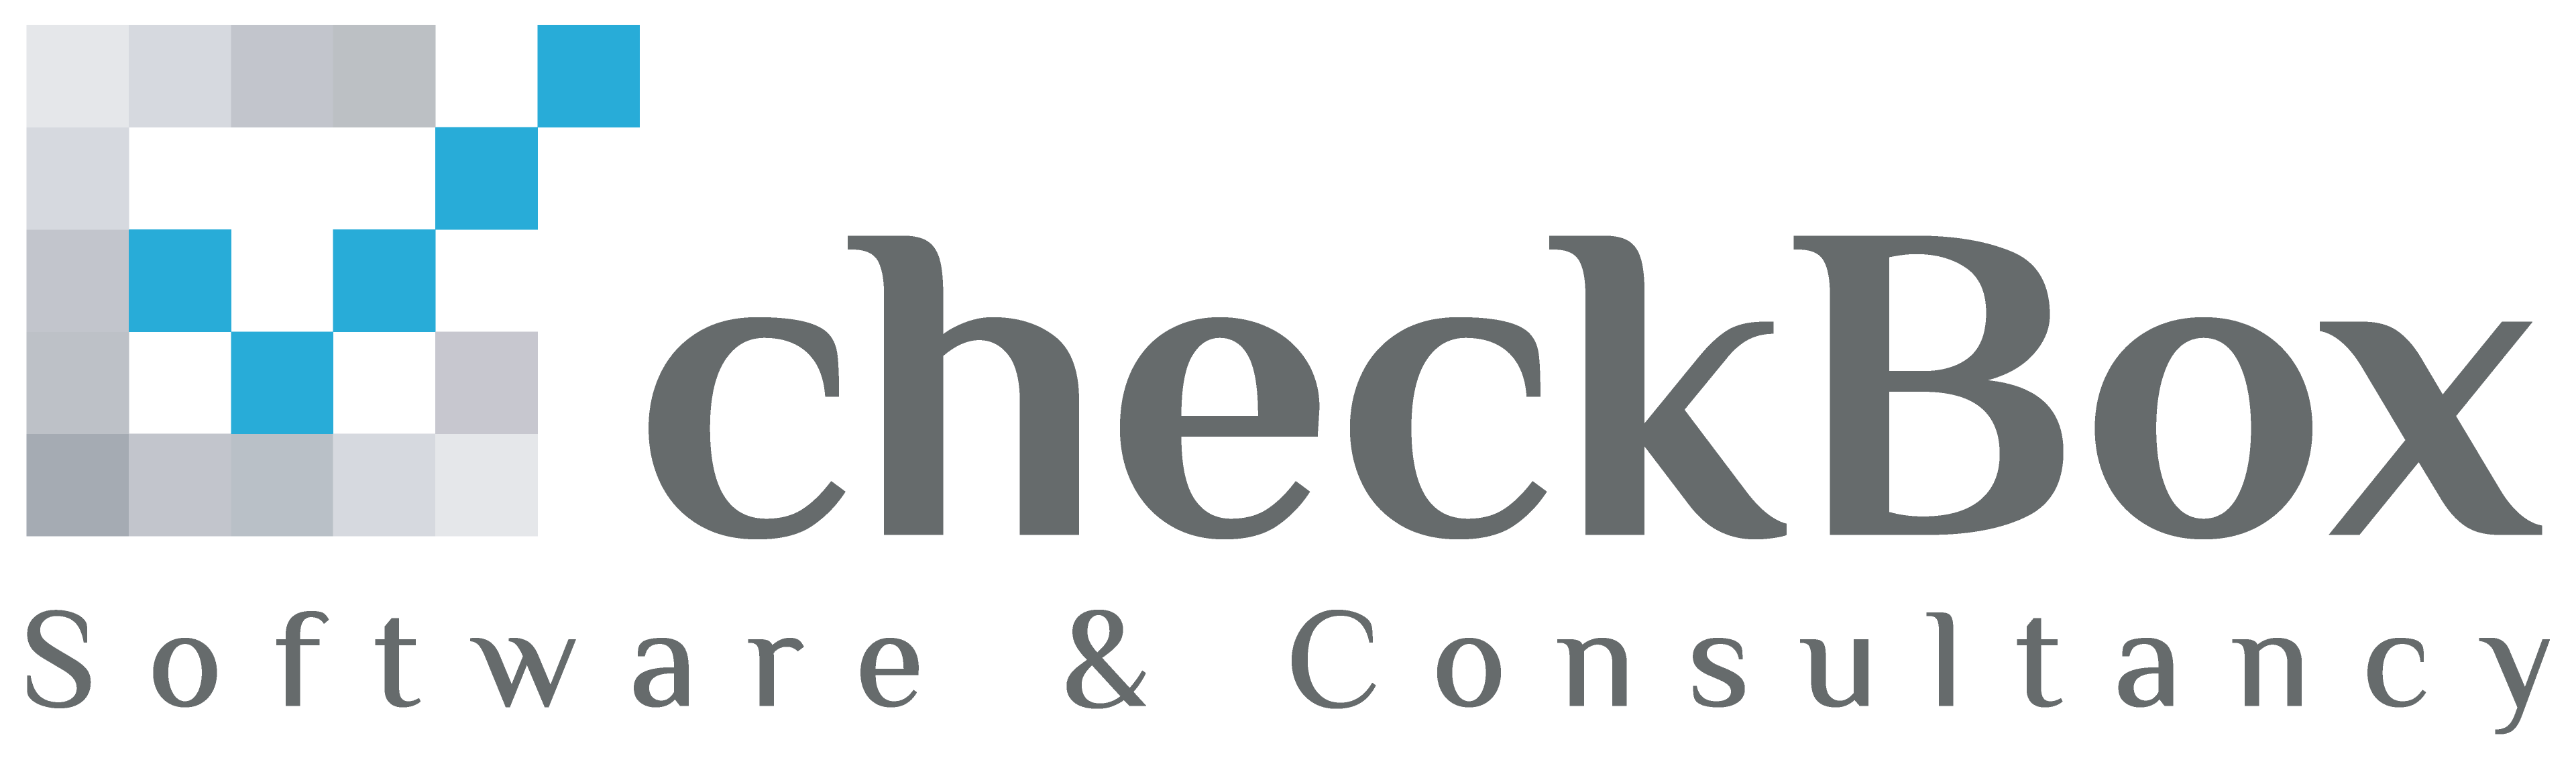 CheckBox Consultancy